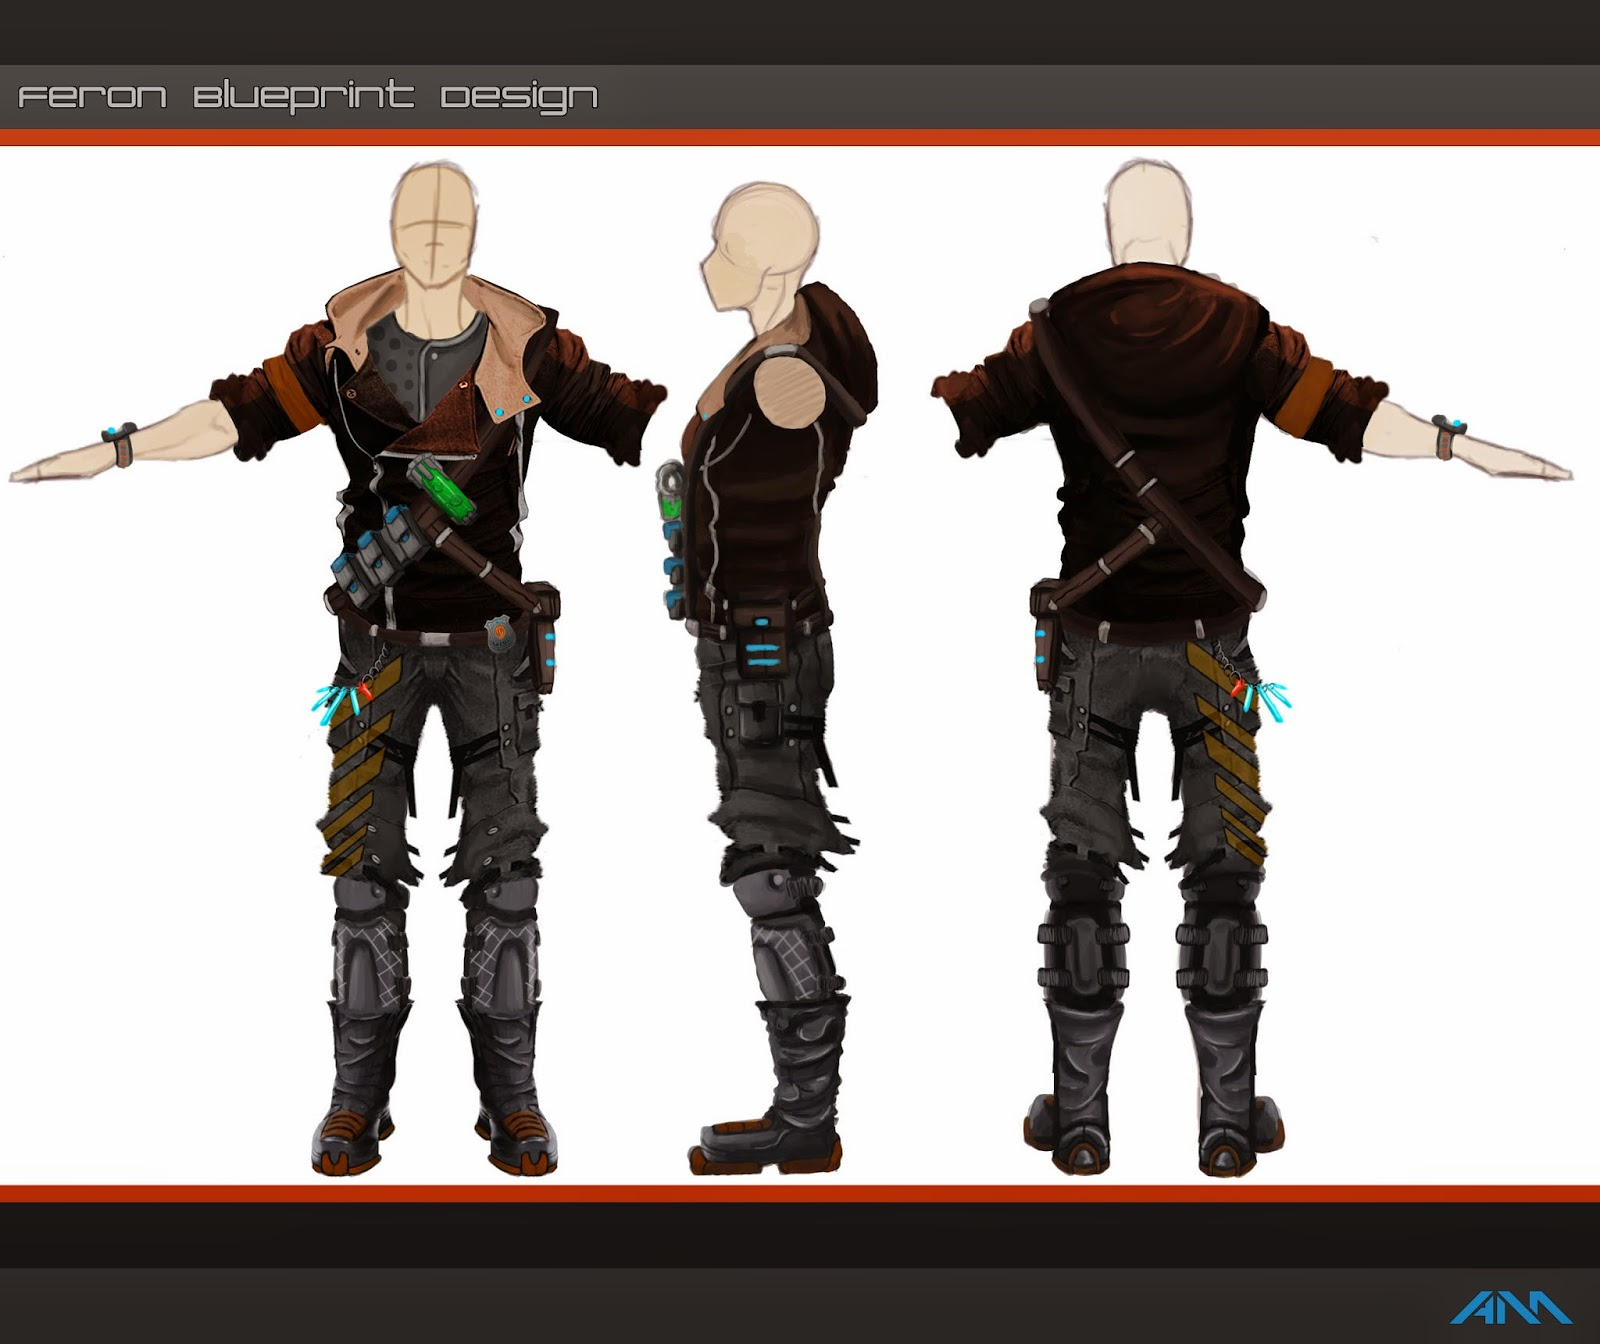 Aiden mockridge ba game art november 2014 character blueprint design malvernweather Image collections